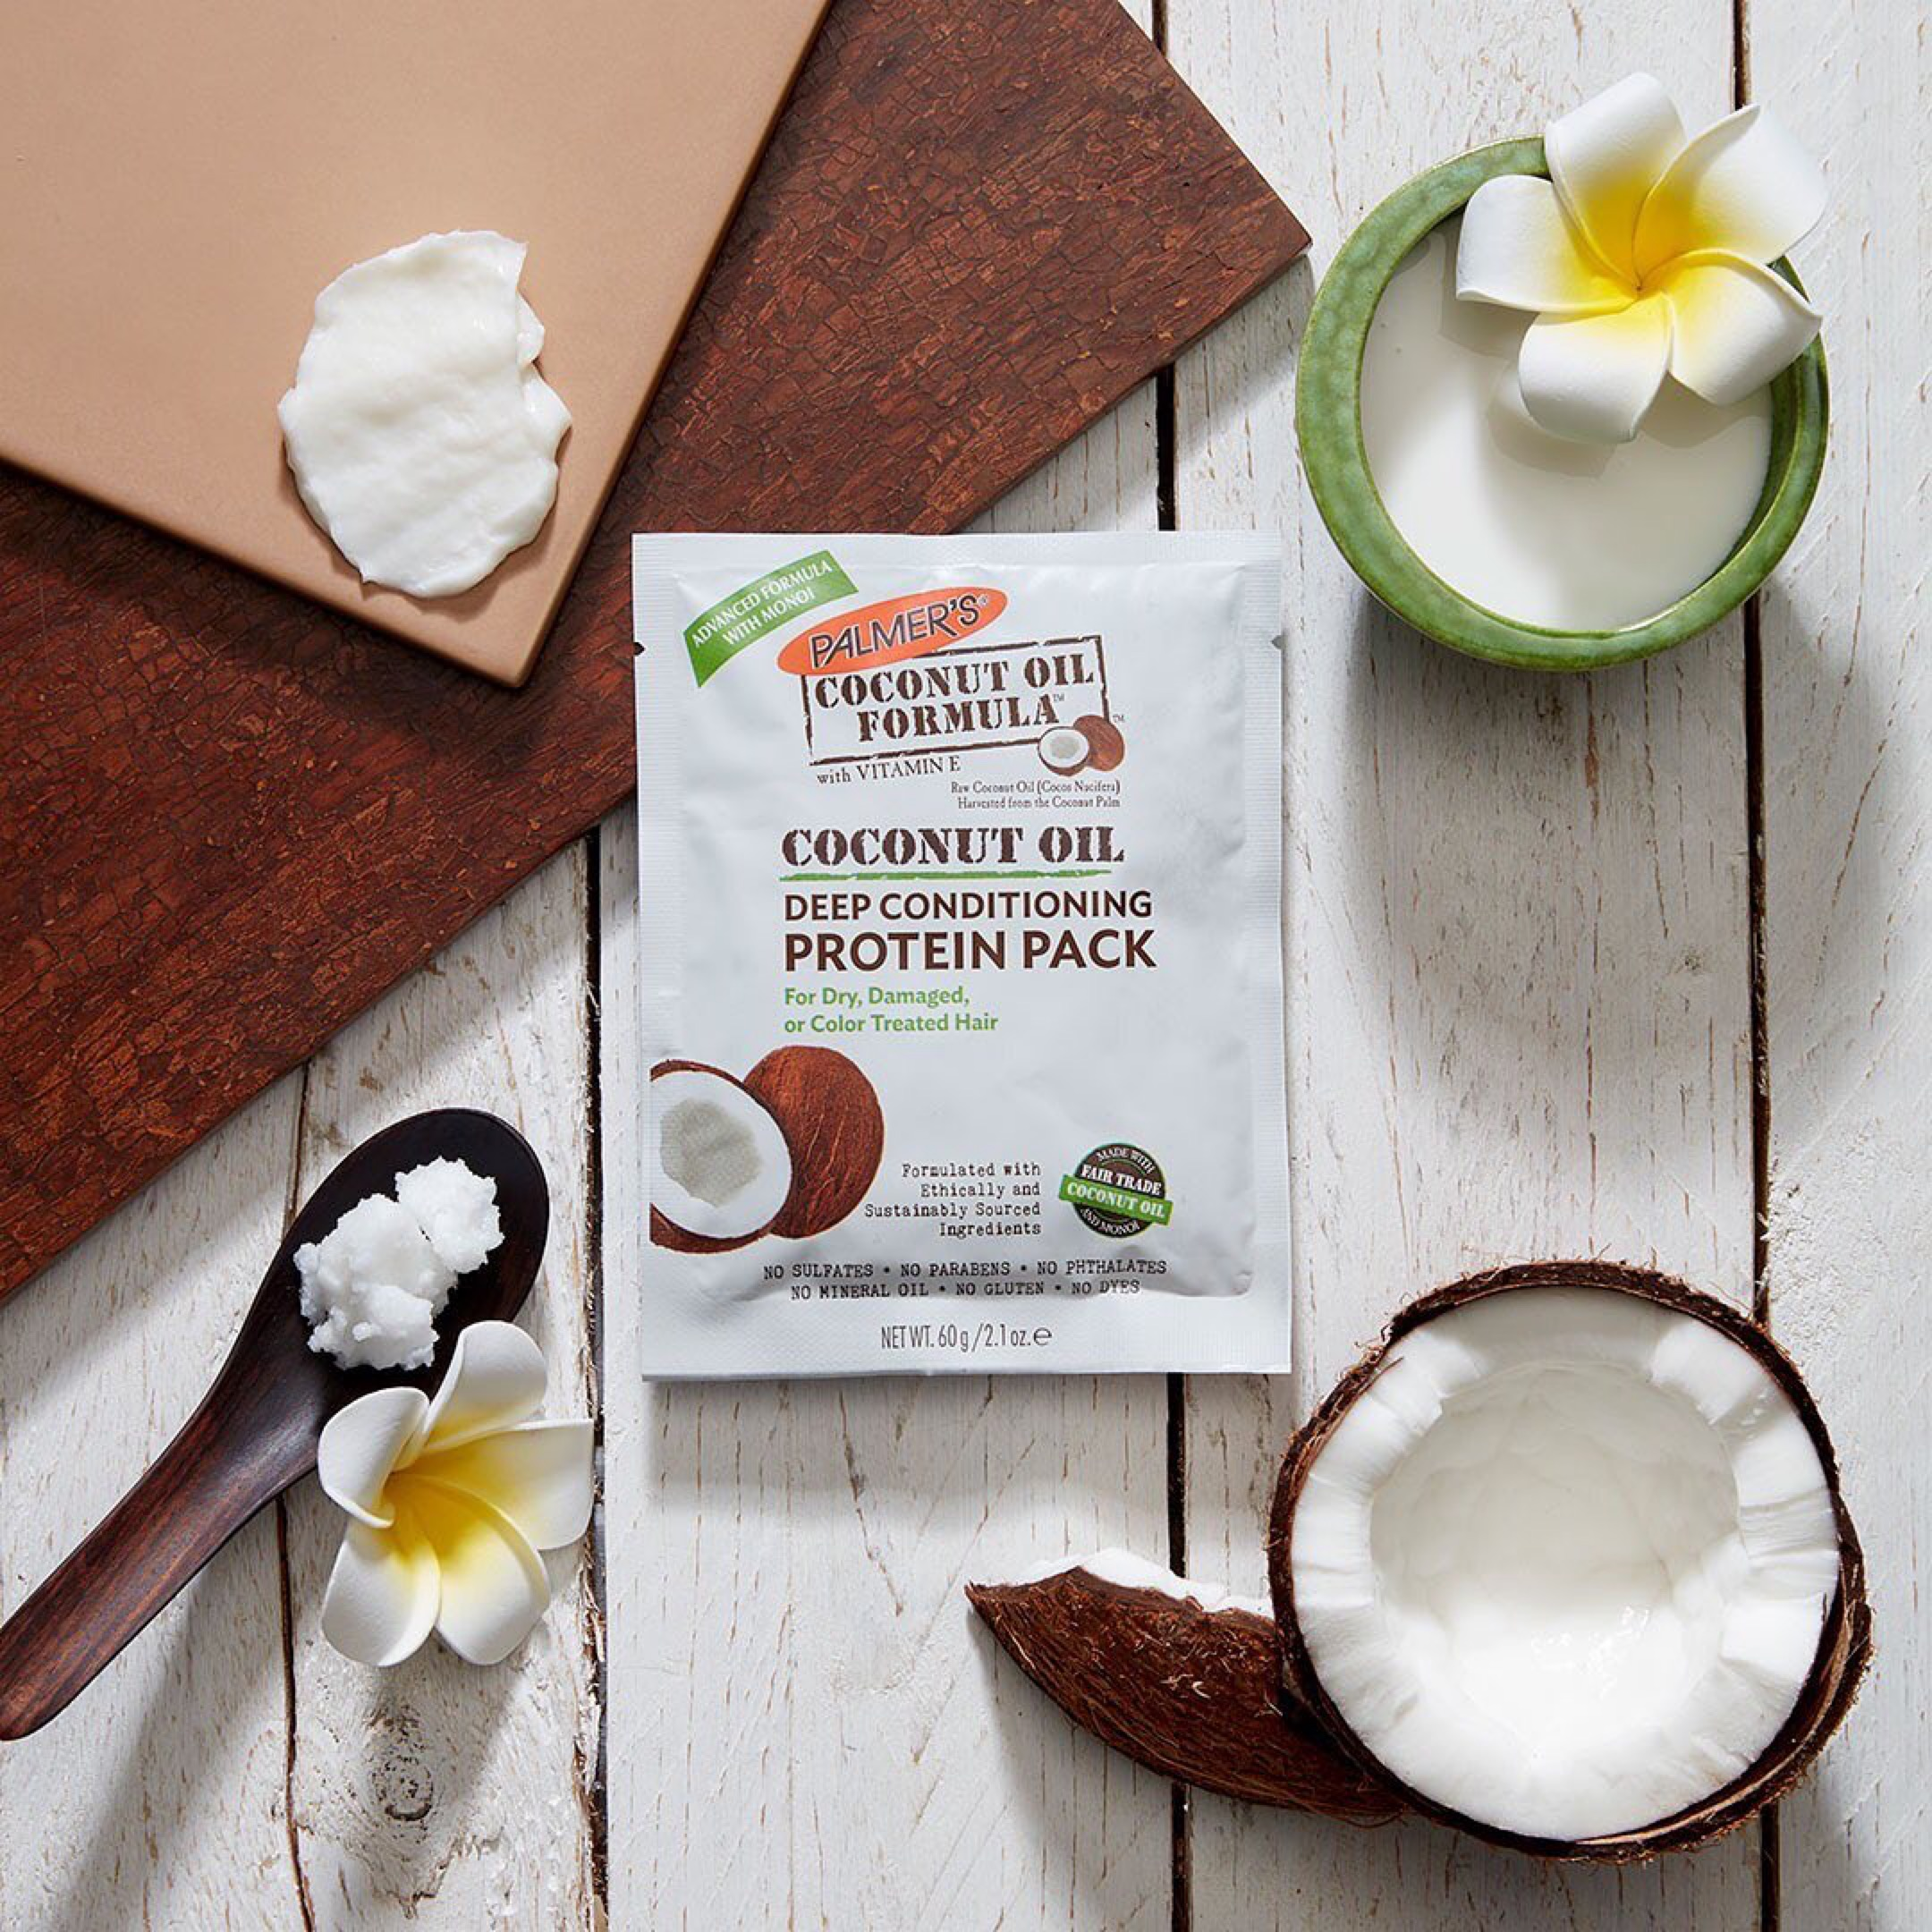 Palmer's Coconut Oil Formula Protein Pack for Winter Hair Care